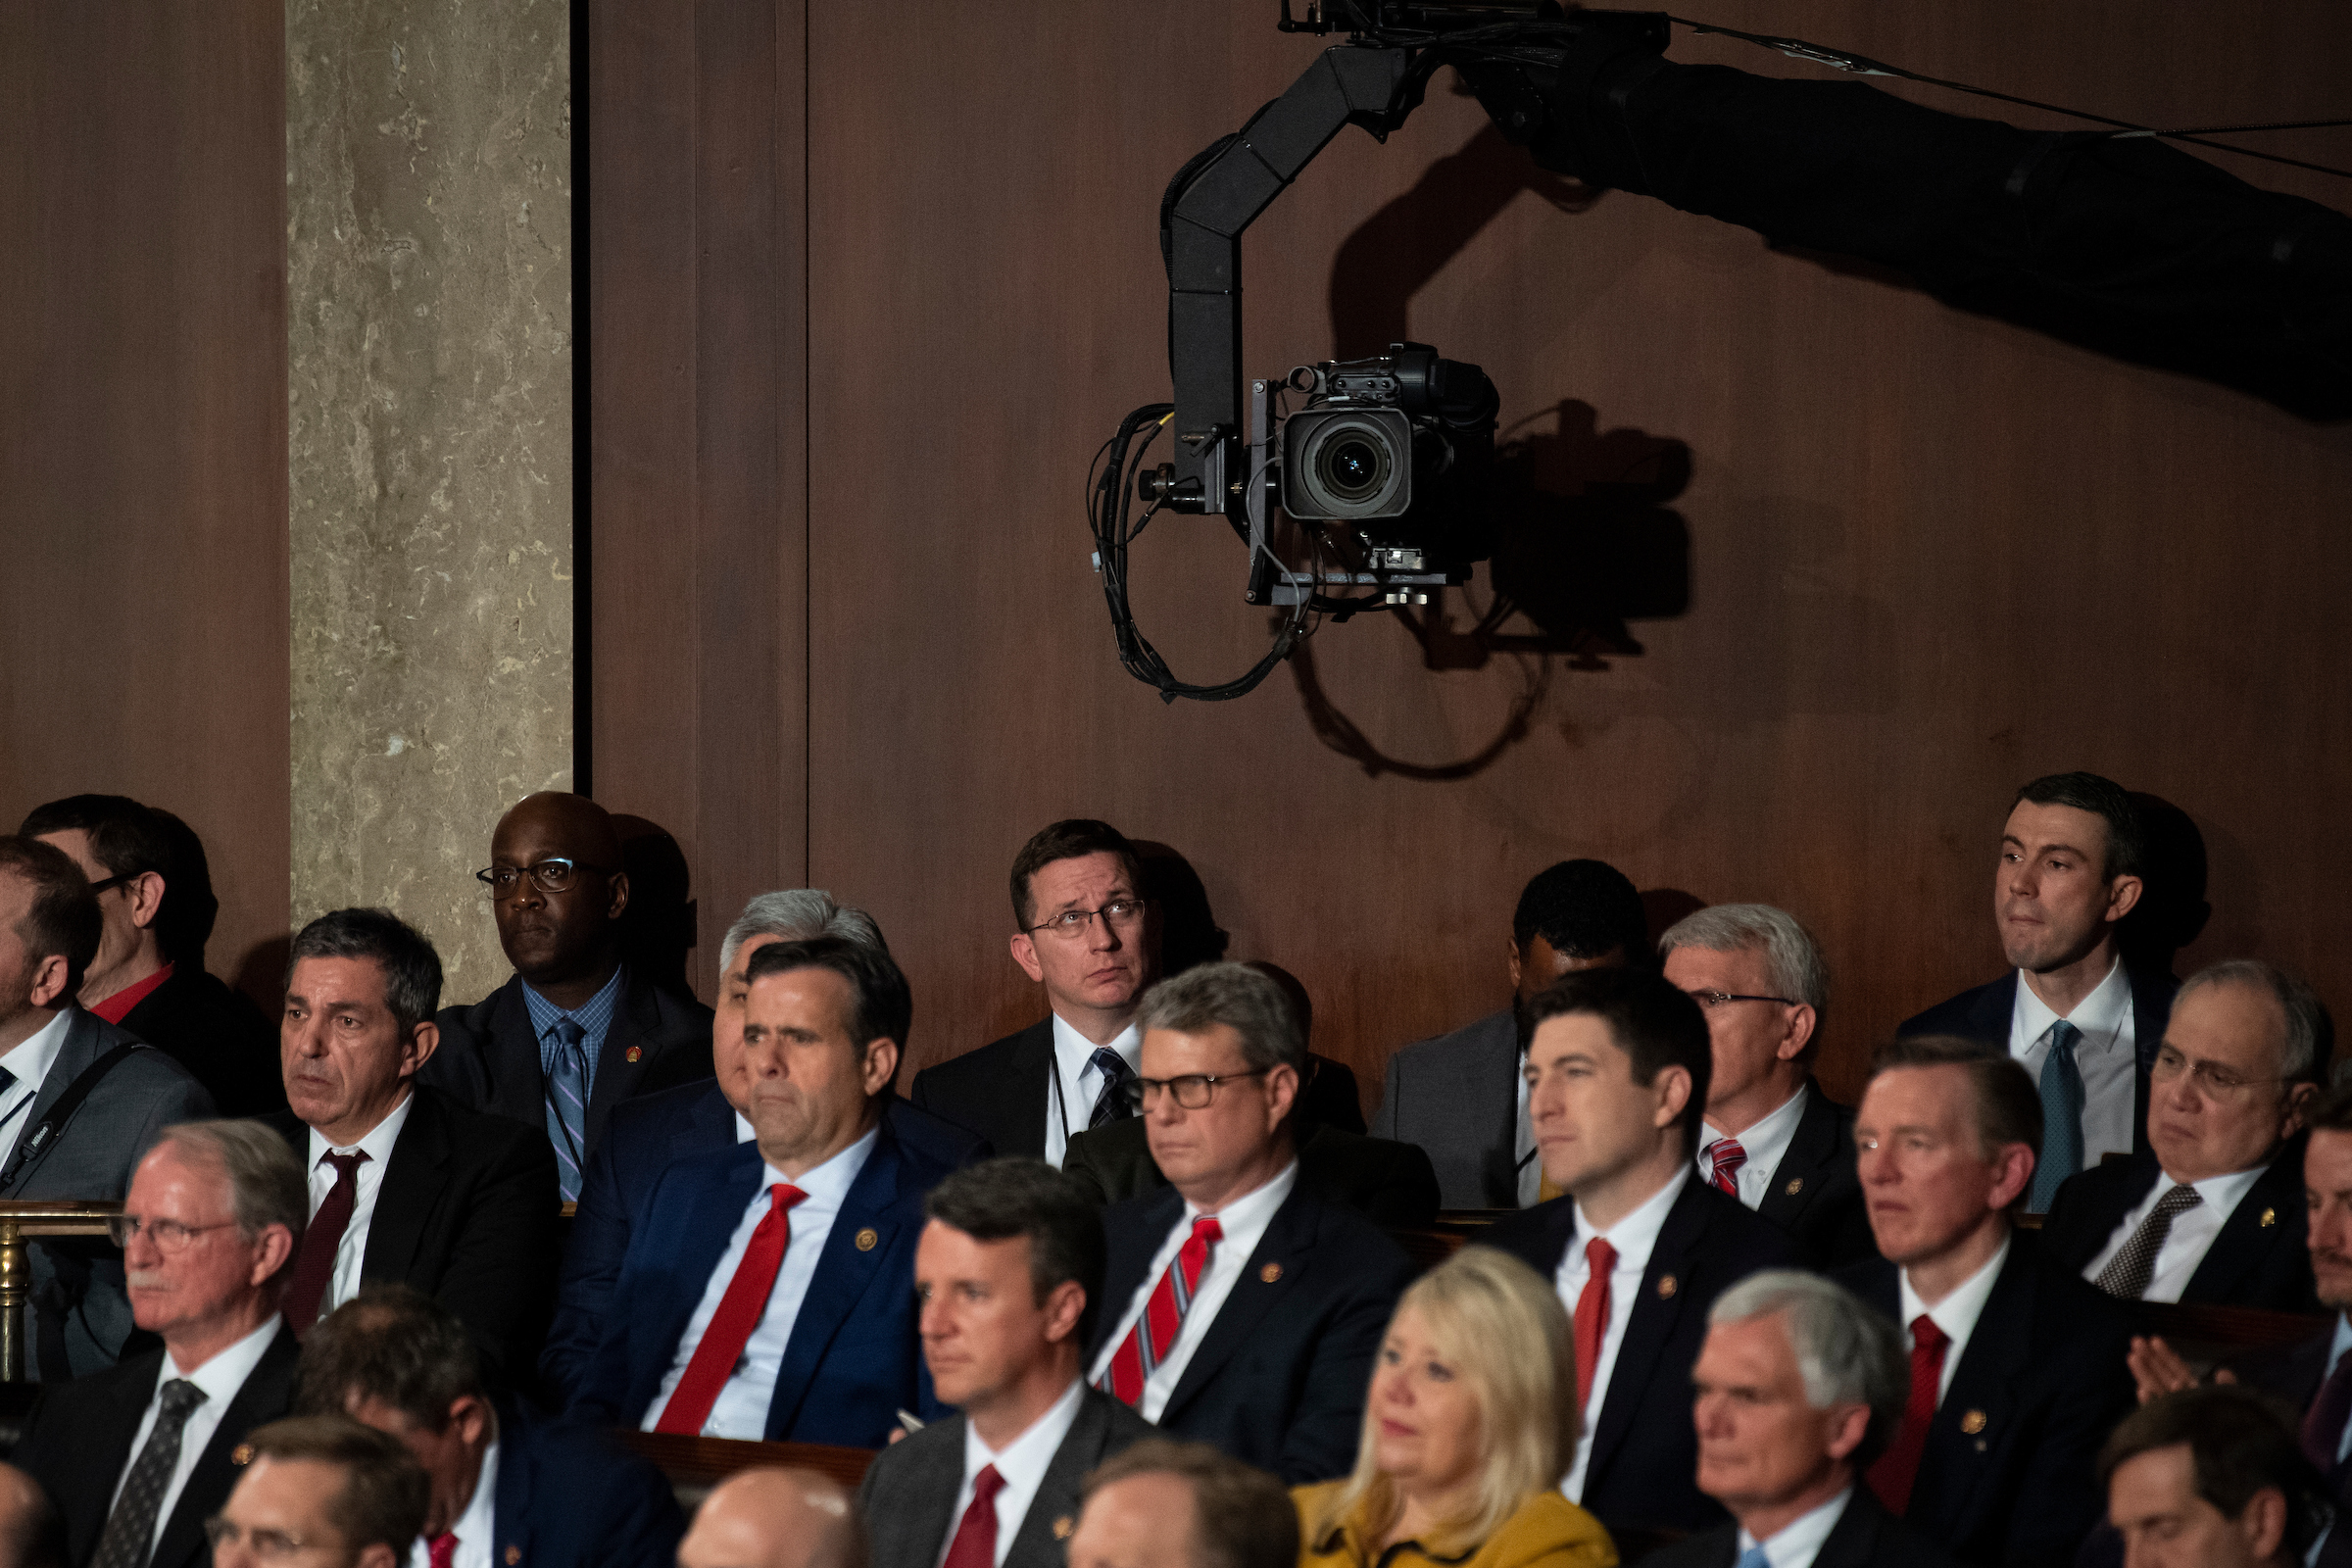 UNITED STATES - FEBRUARY 4: A staffer looks up at a boom camera as President Donald Trump delivers his State of the Union Address to a joint session of Congress in the Capitol on Tuesday, Feb. 4, 2020. (Photo by Caroline Brehman/CQ Roll Call)